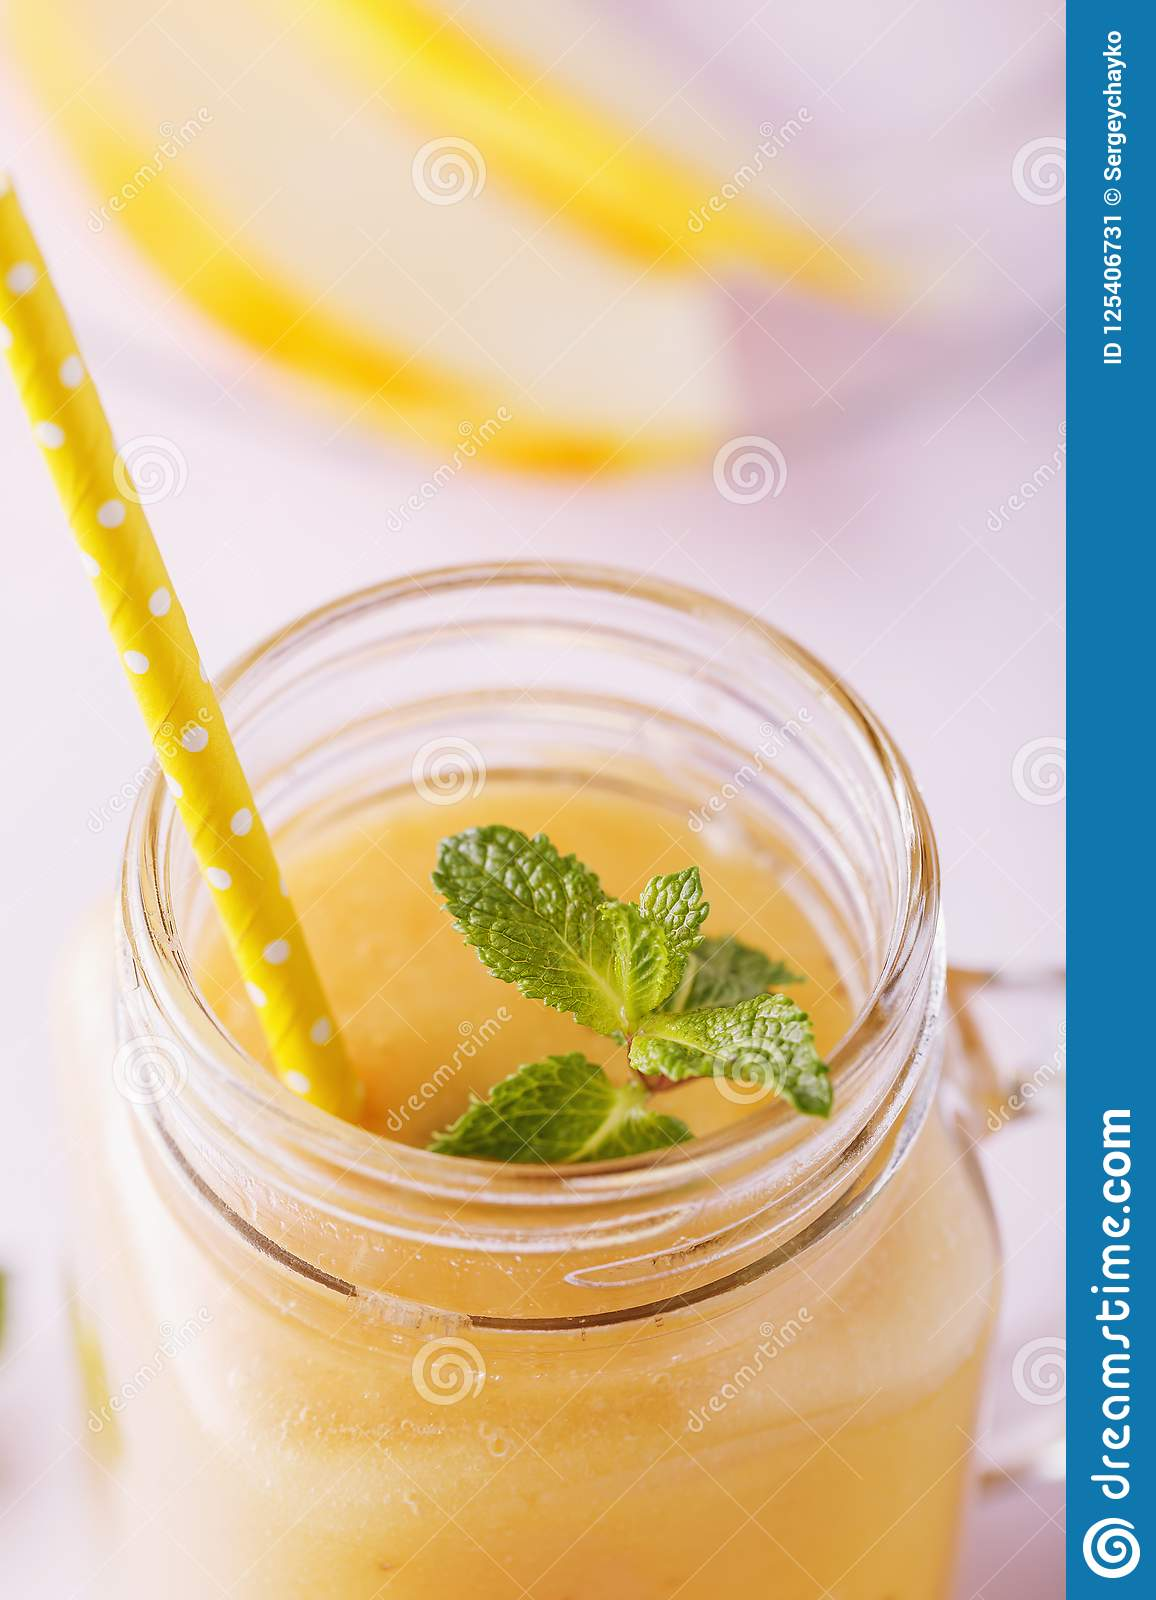 Smoothies of melon with mint